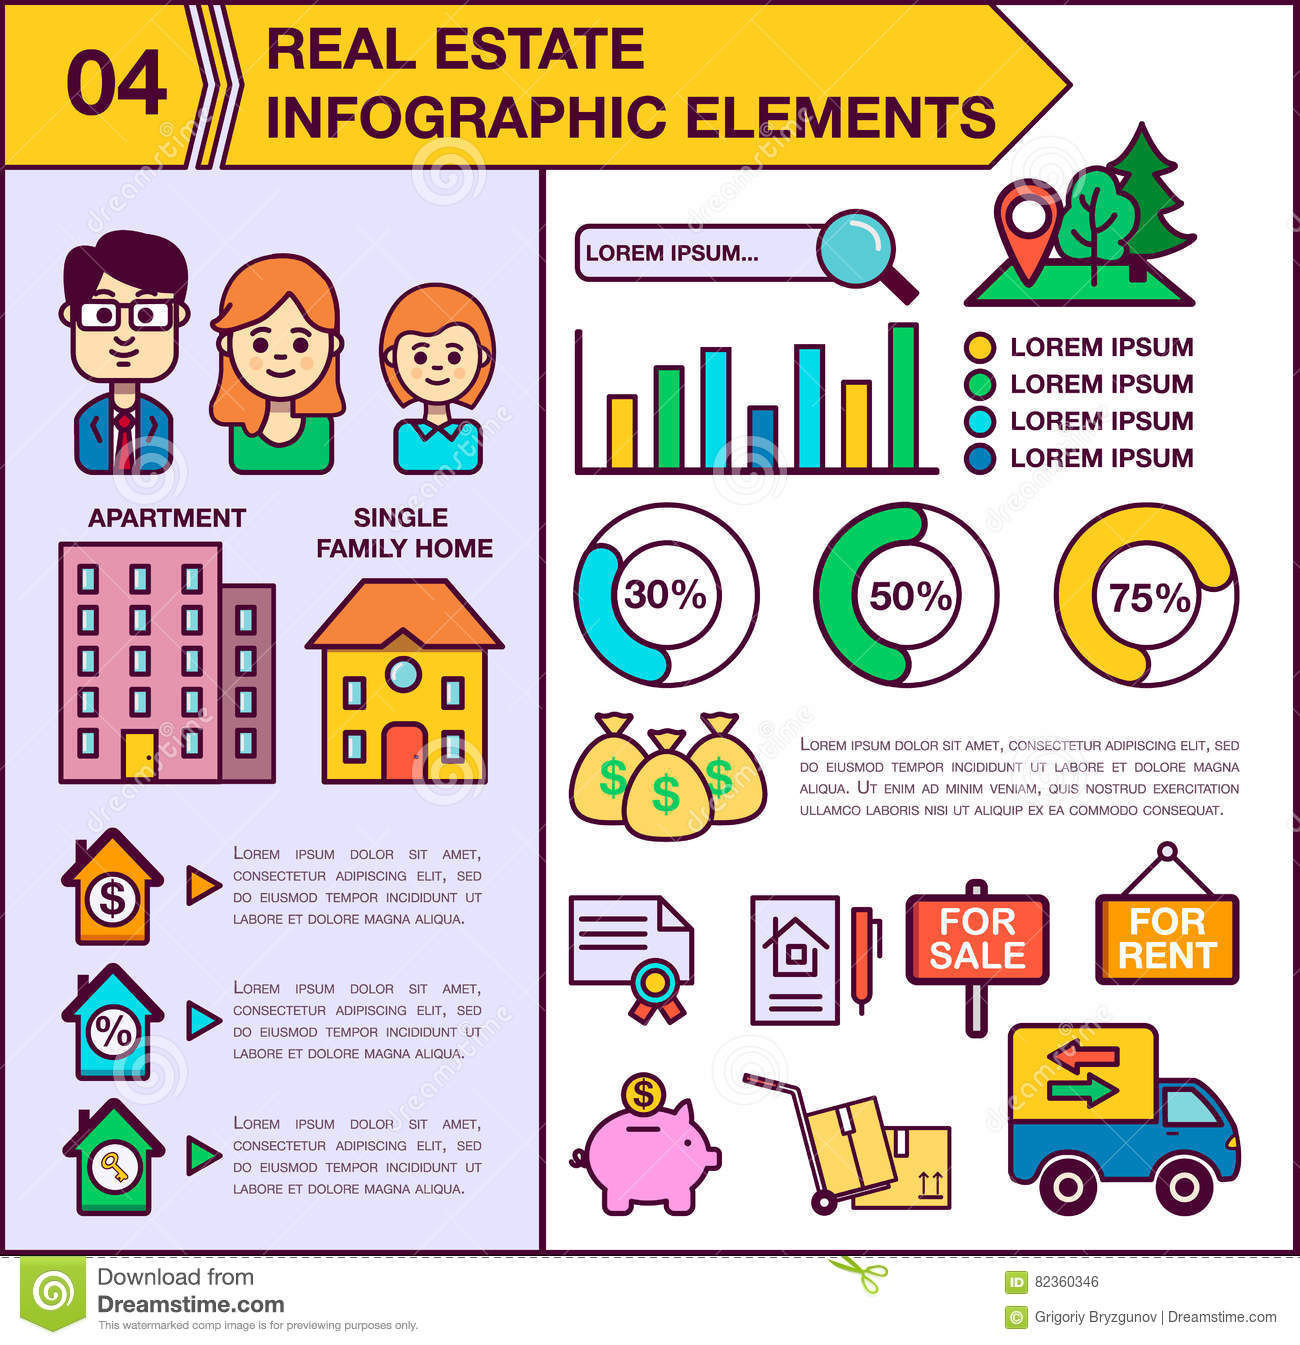 Real Estate infographic template and elements. The template includes illustrations of men, women and child. Modern